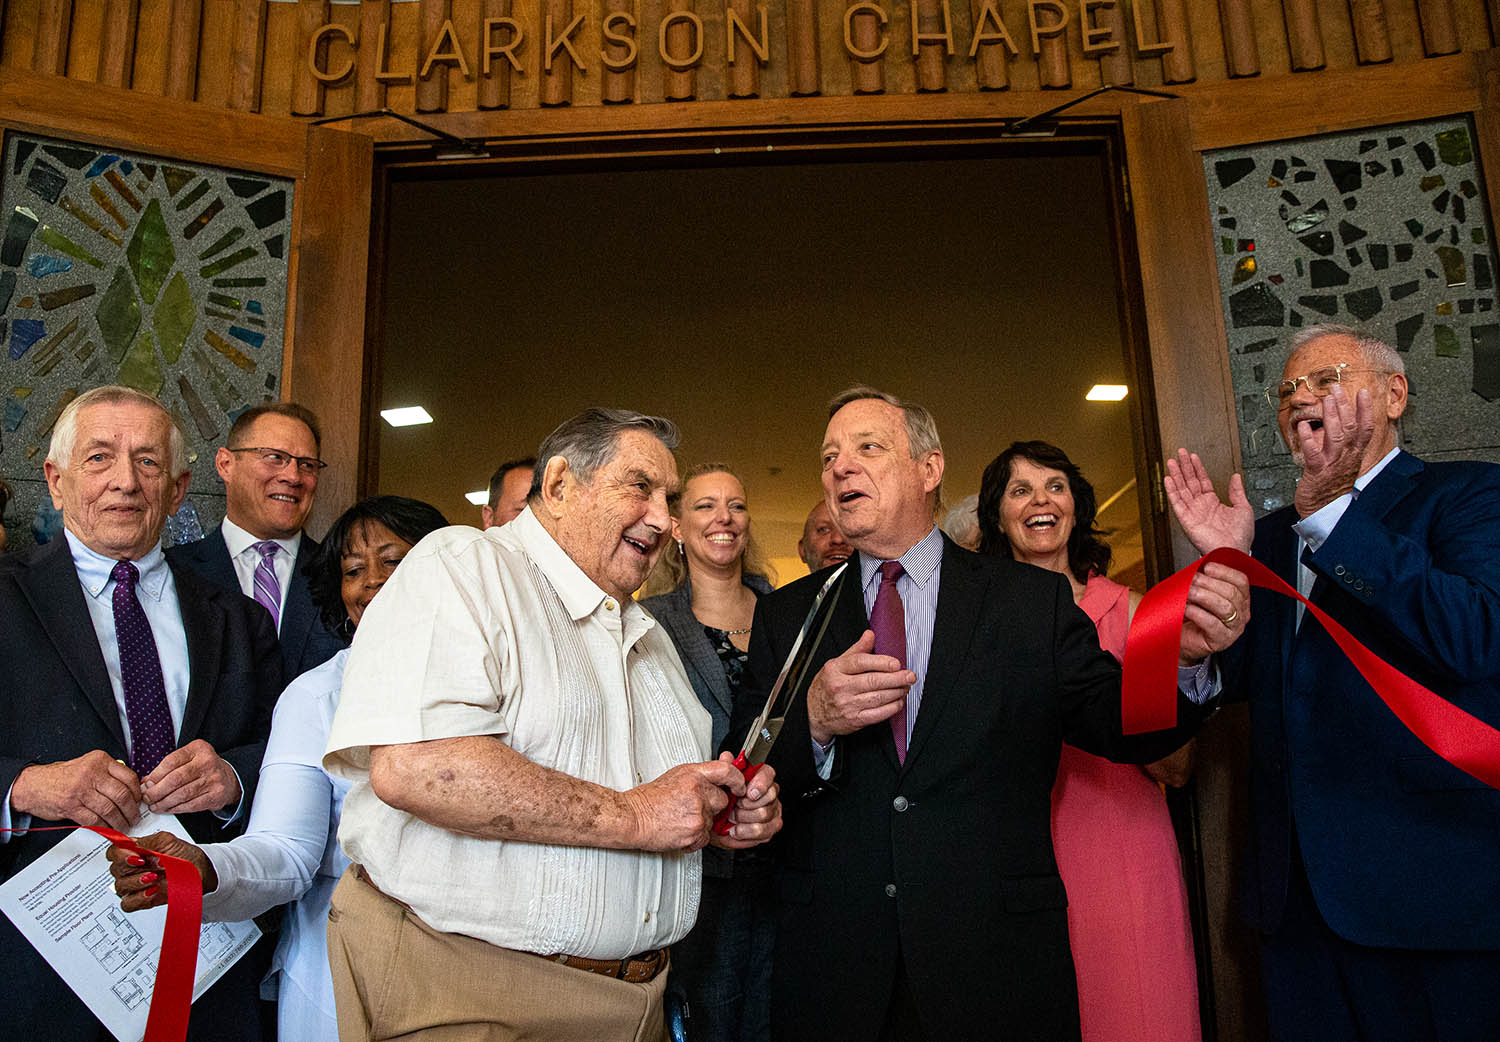 Irv Smith, center, cuts the ribbon along with U.S. Sen. Dick Durbin, D-Ill., outside the Clarkson Chapel in the former First United Methodist Church as the Economic Growth Corporation celebrates the opening of the former church as the Centre @ 501 residential and commercial building, Friday, June 28, 2019, in Springfield, Ill. The Economic Growth Corporation credited Irv Smith, the former property owner, for giving a substantial discount on the sale of the property as major factor in the success of the project.  [Justin L. Fowler/The State Journal-Register]